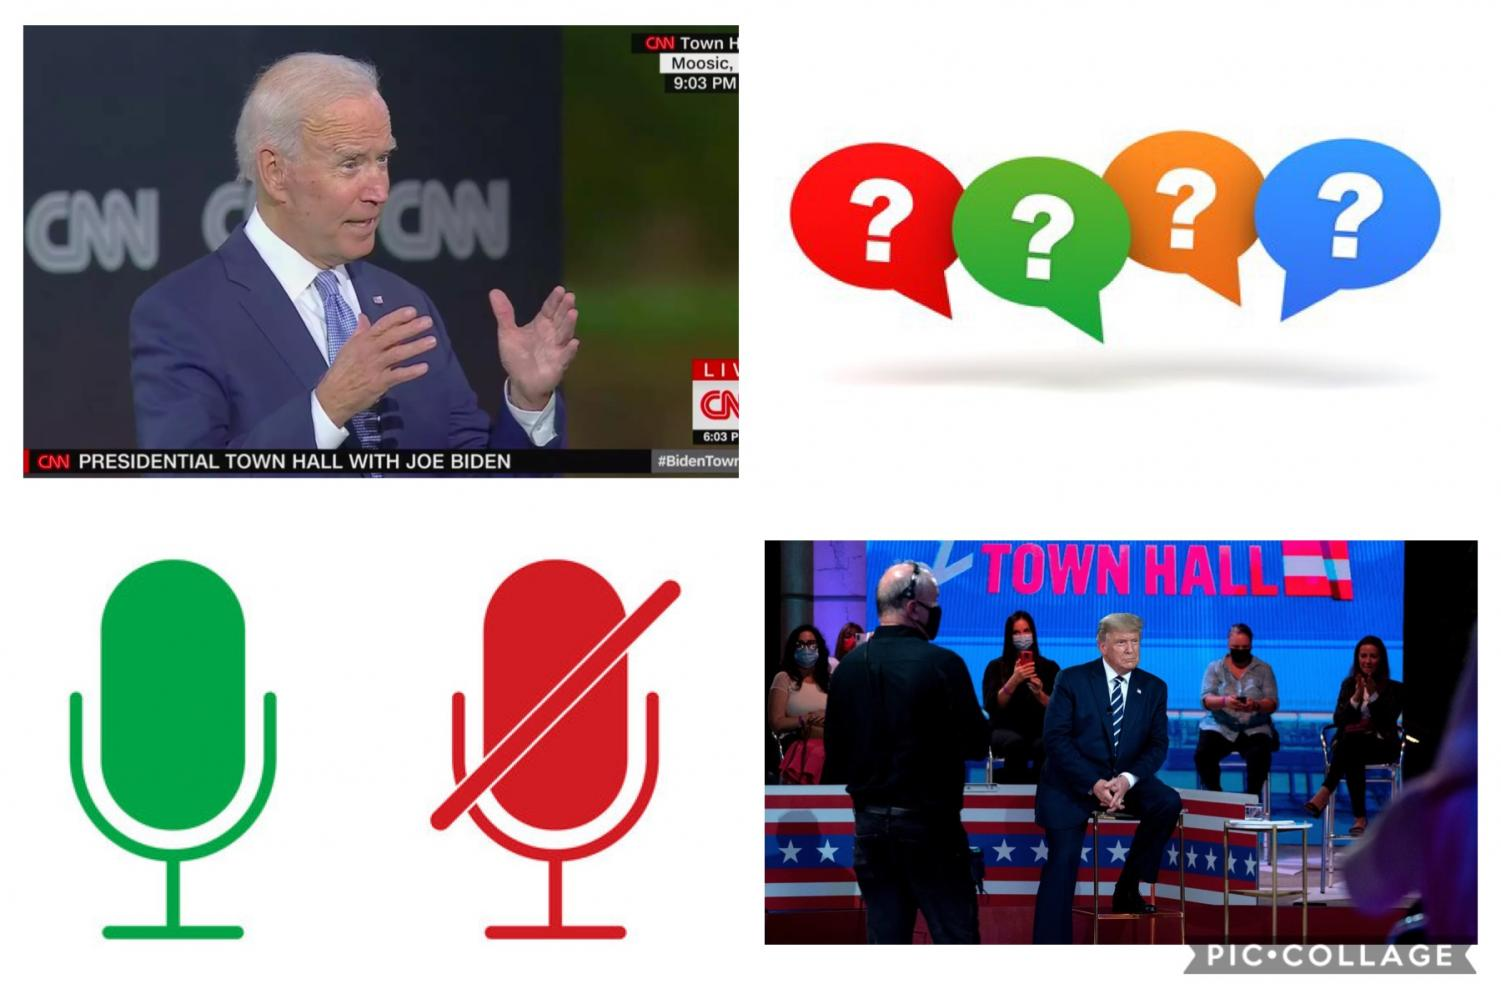 Since the first presidential debate between President Trump and Joe Biden was disastrous, viewers are expecting more organization and cooperation for the next debate. New changes, such as being able to mute the mic, are being implemented for the next presidential debate. For now, we will just have to wait and see what will happen next.